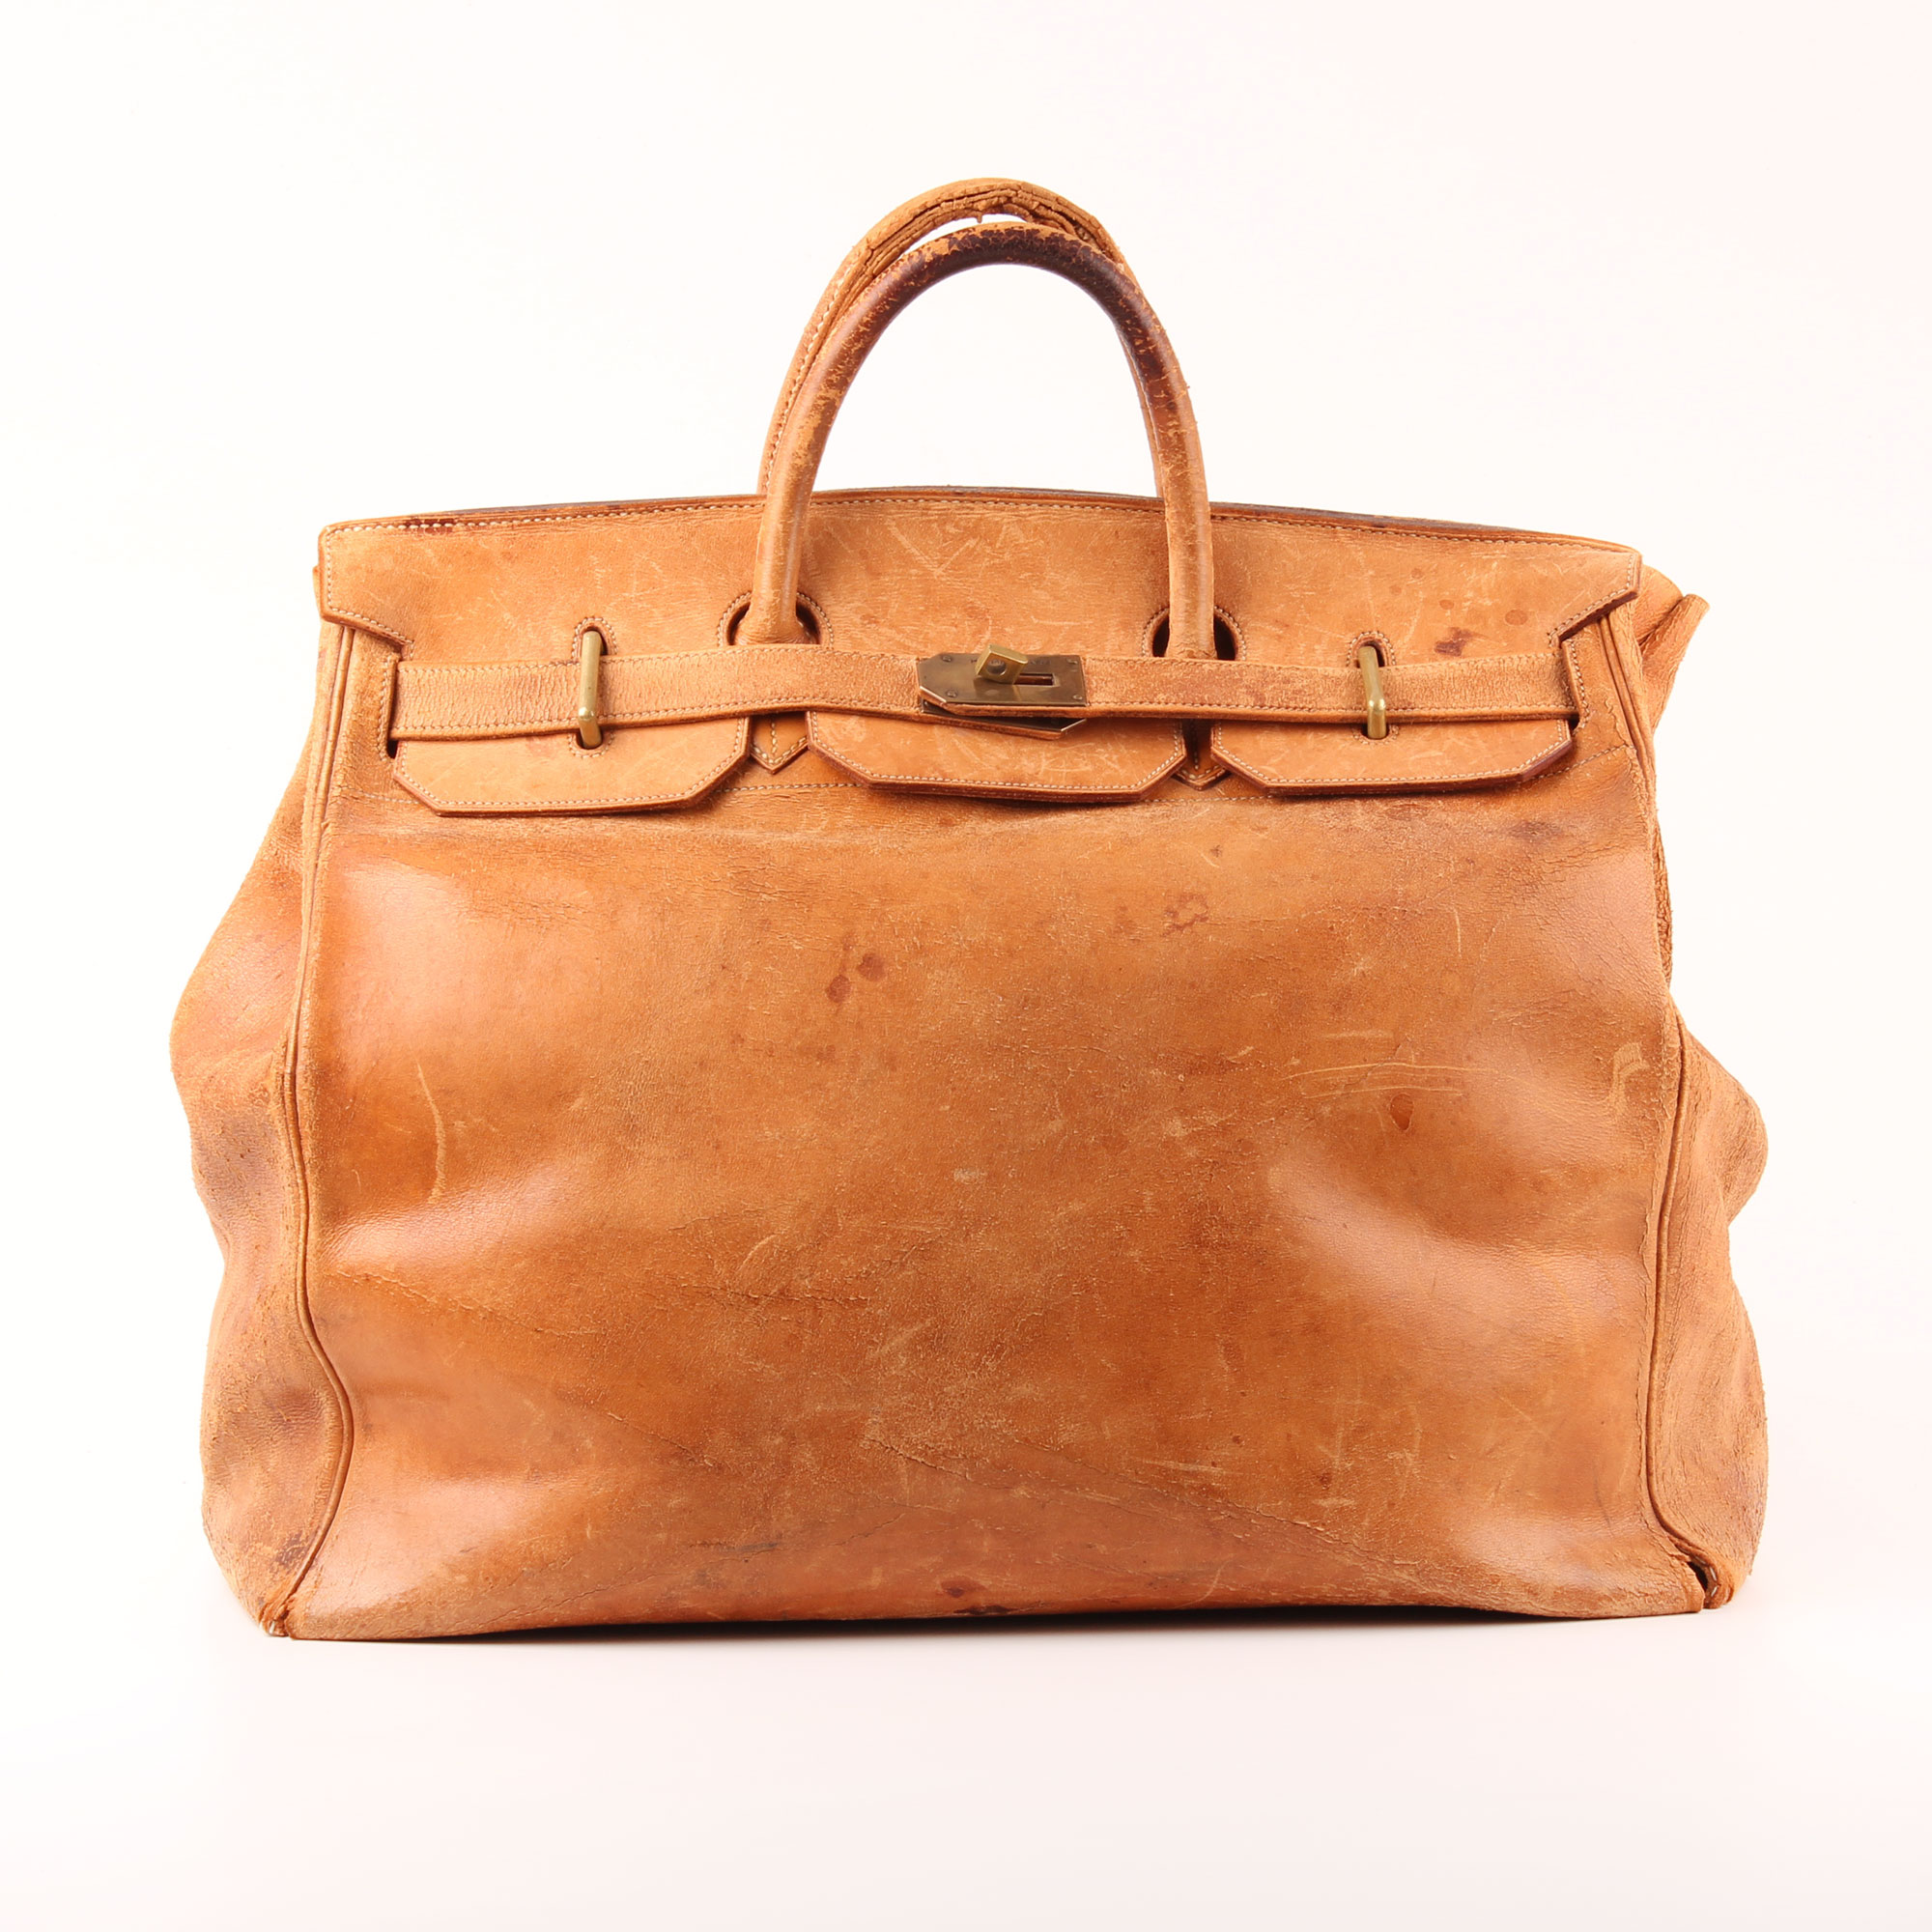 Hermès Travel Bag Haut à Courroies Natural Gold I CBL Bags 087966aedb7ff